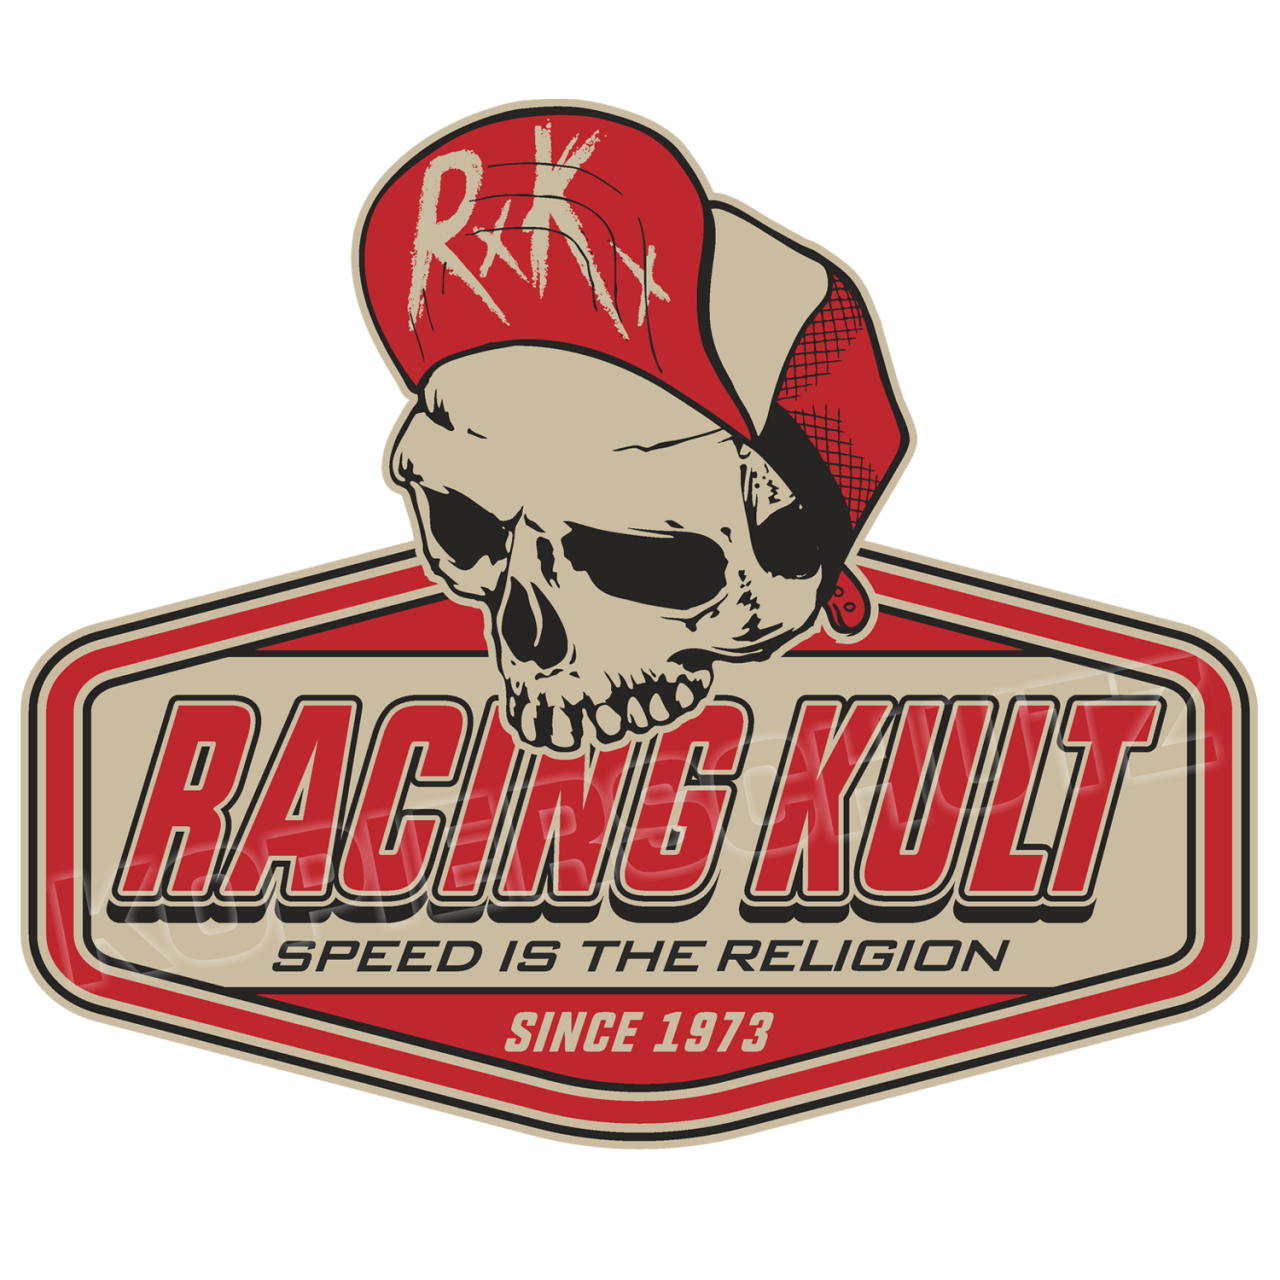 Racing Kult Aufkleber Sticker RK Logo Speed is the Religion in verschiedenen Größen